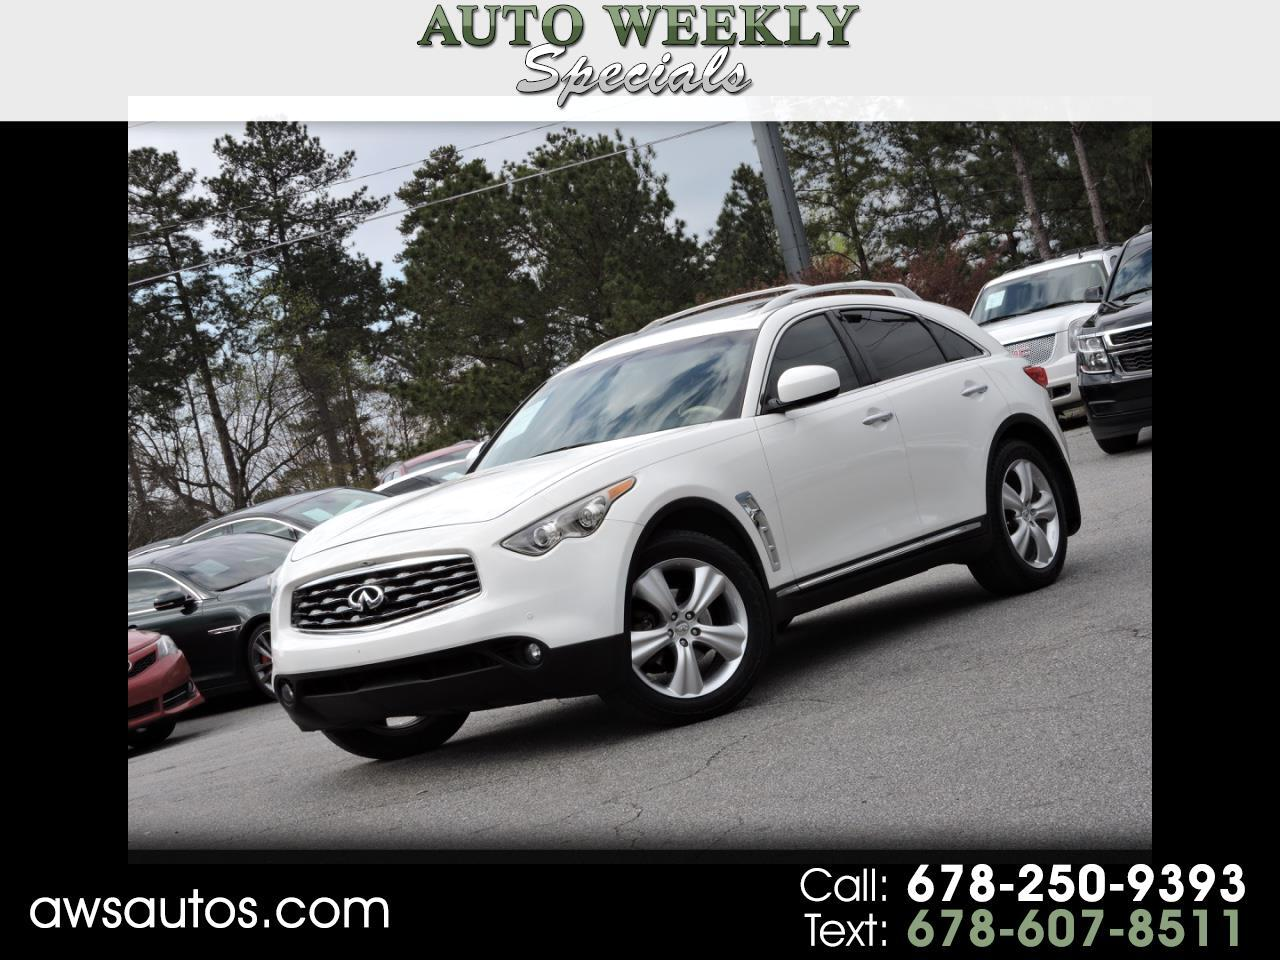 2011 INFINITI FX35  for sale VIN: JN8AS1MU9BM711651